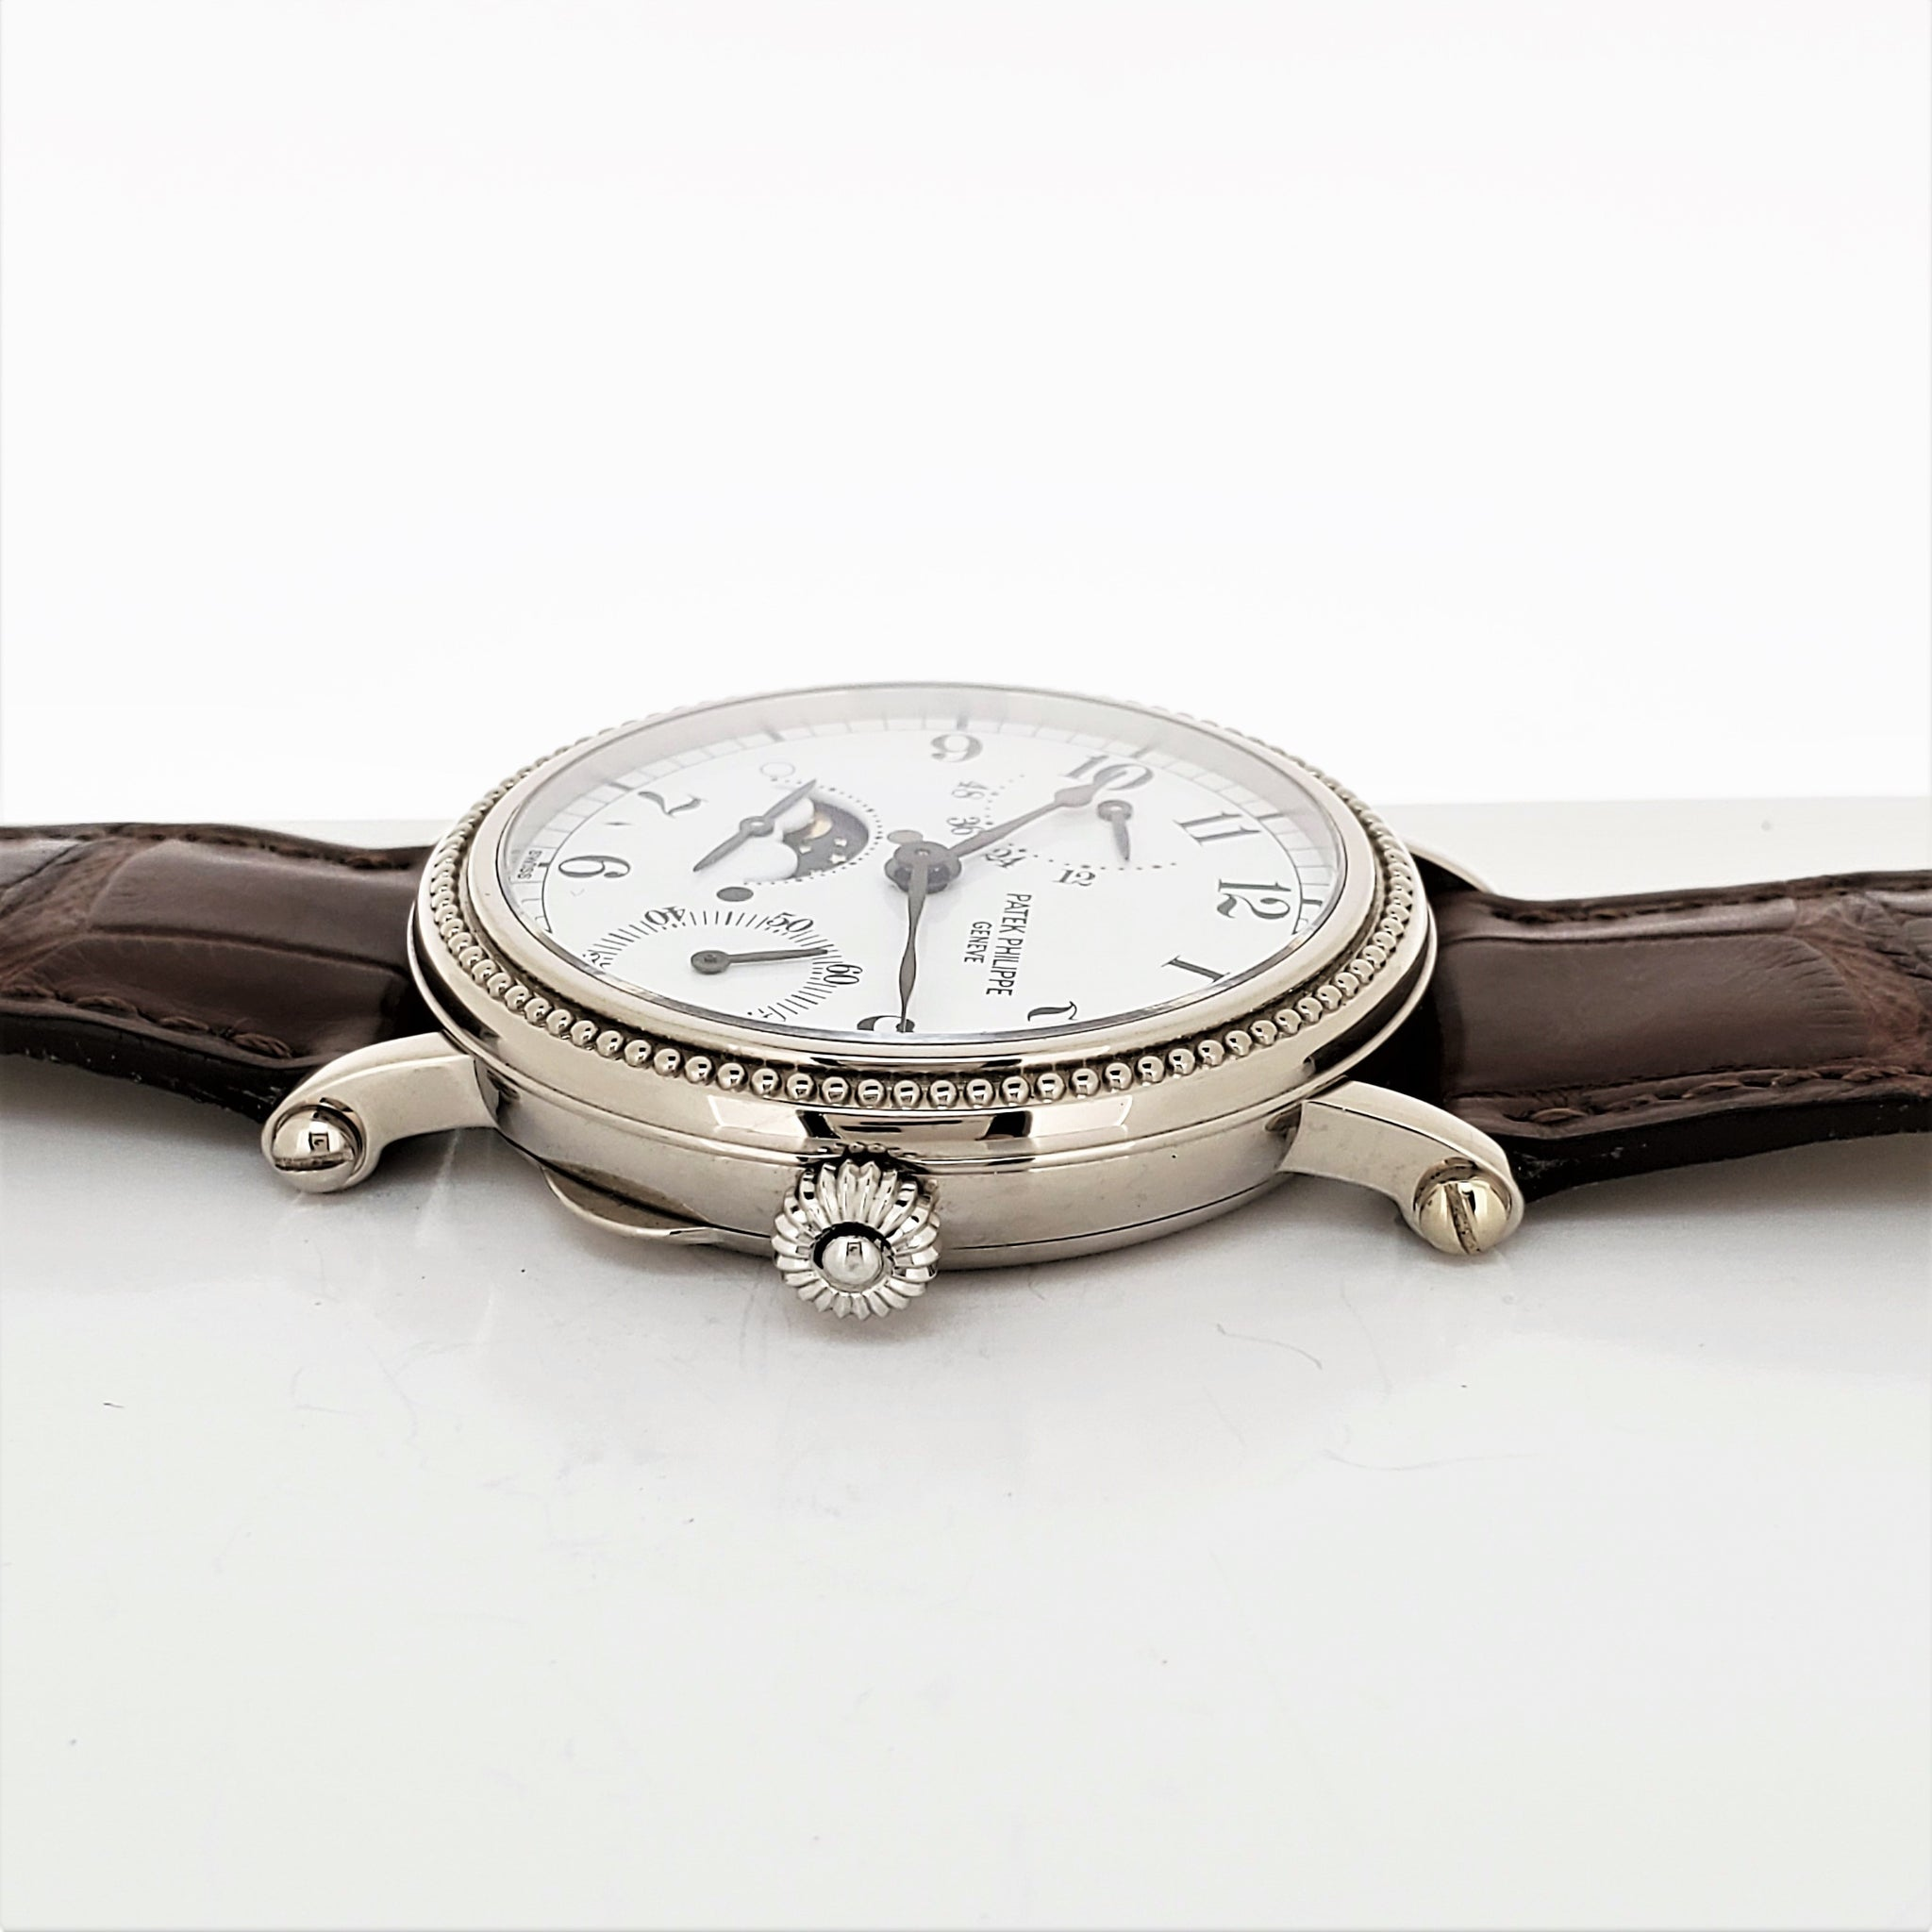 Patek Philippe 5015G Calatrava Watch